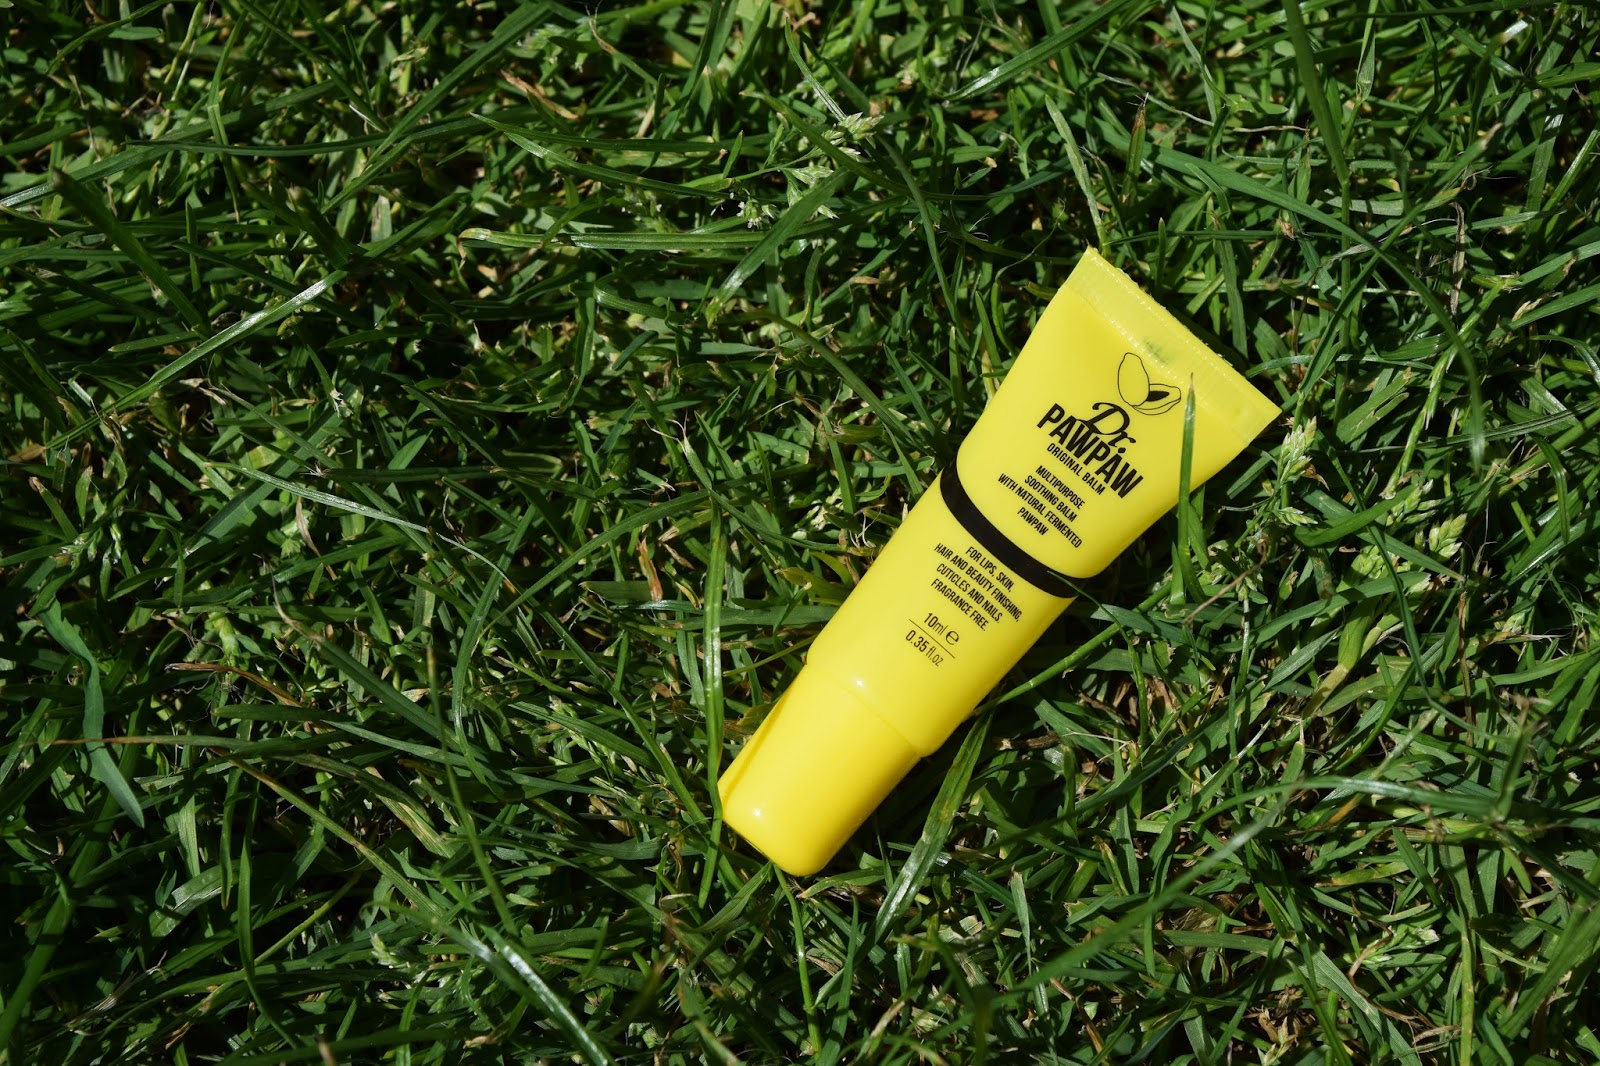 a yellow sample tube of Dr PawPaw lipbalm